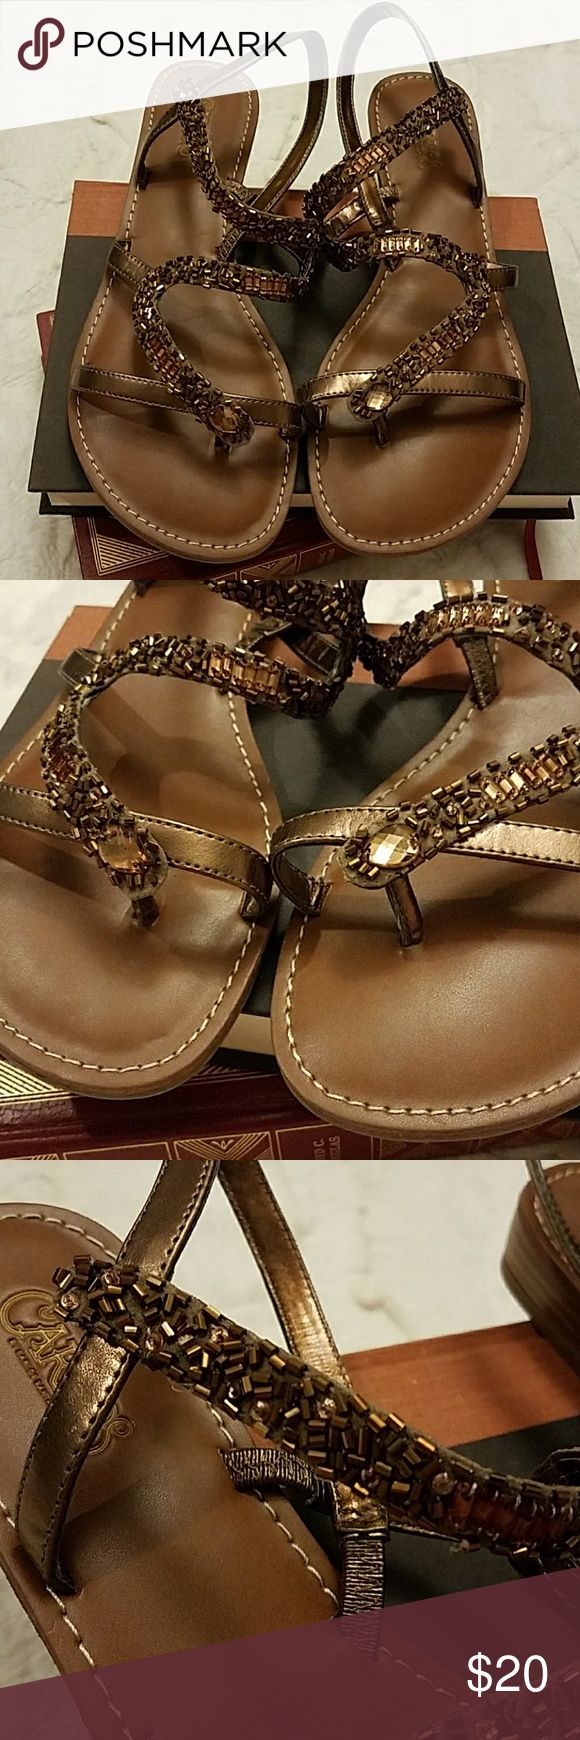 🌻🌻Carlos Santana Athena Sandals🌻🌻 Brown heavily beaded Athena Sandals! In perfect condition, worn one time! No beading missing, bottoms are in perfect condition & super clean! Carlos Santana Shoes Sandals